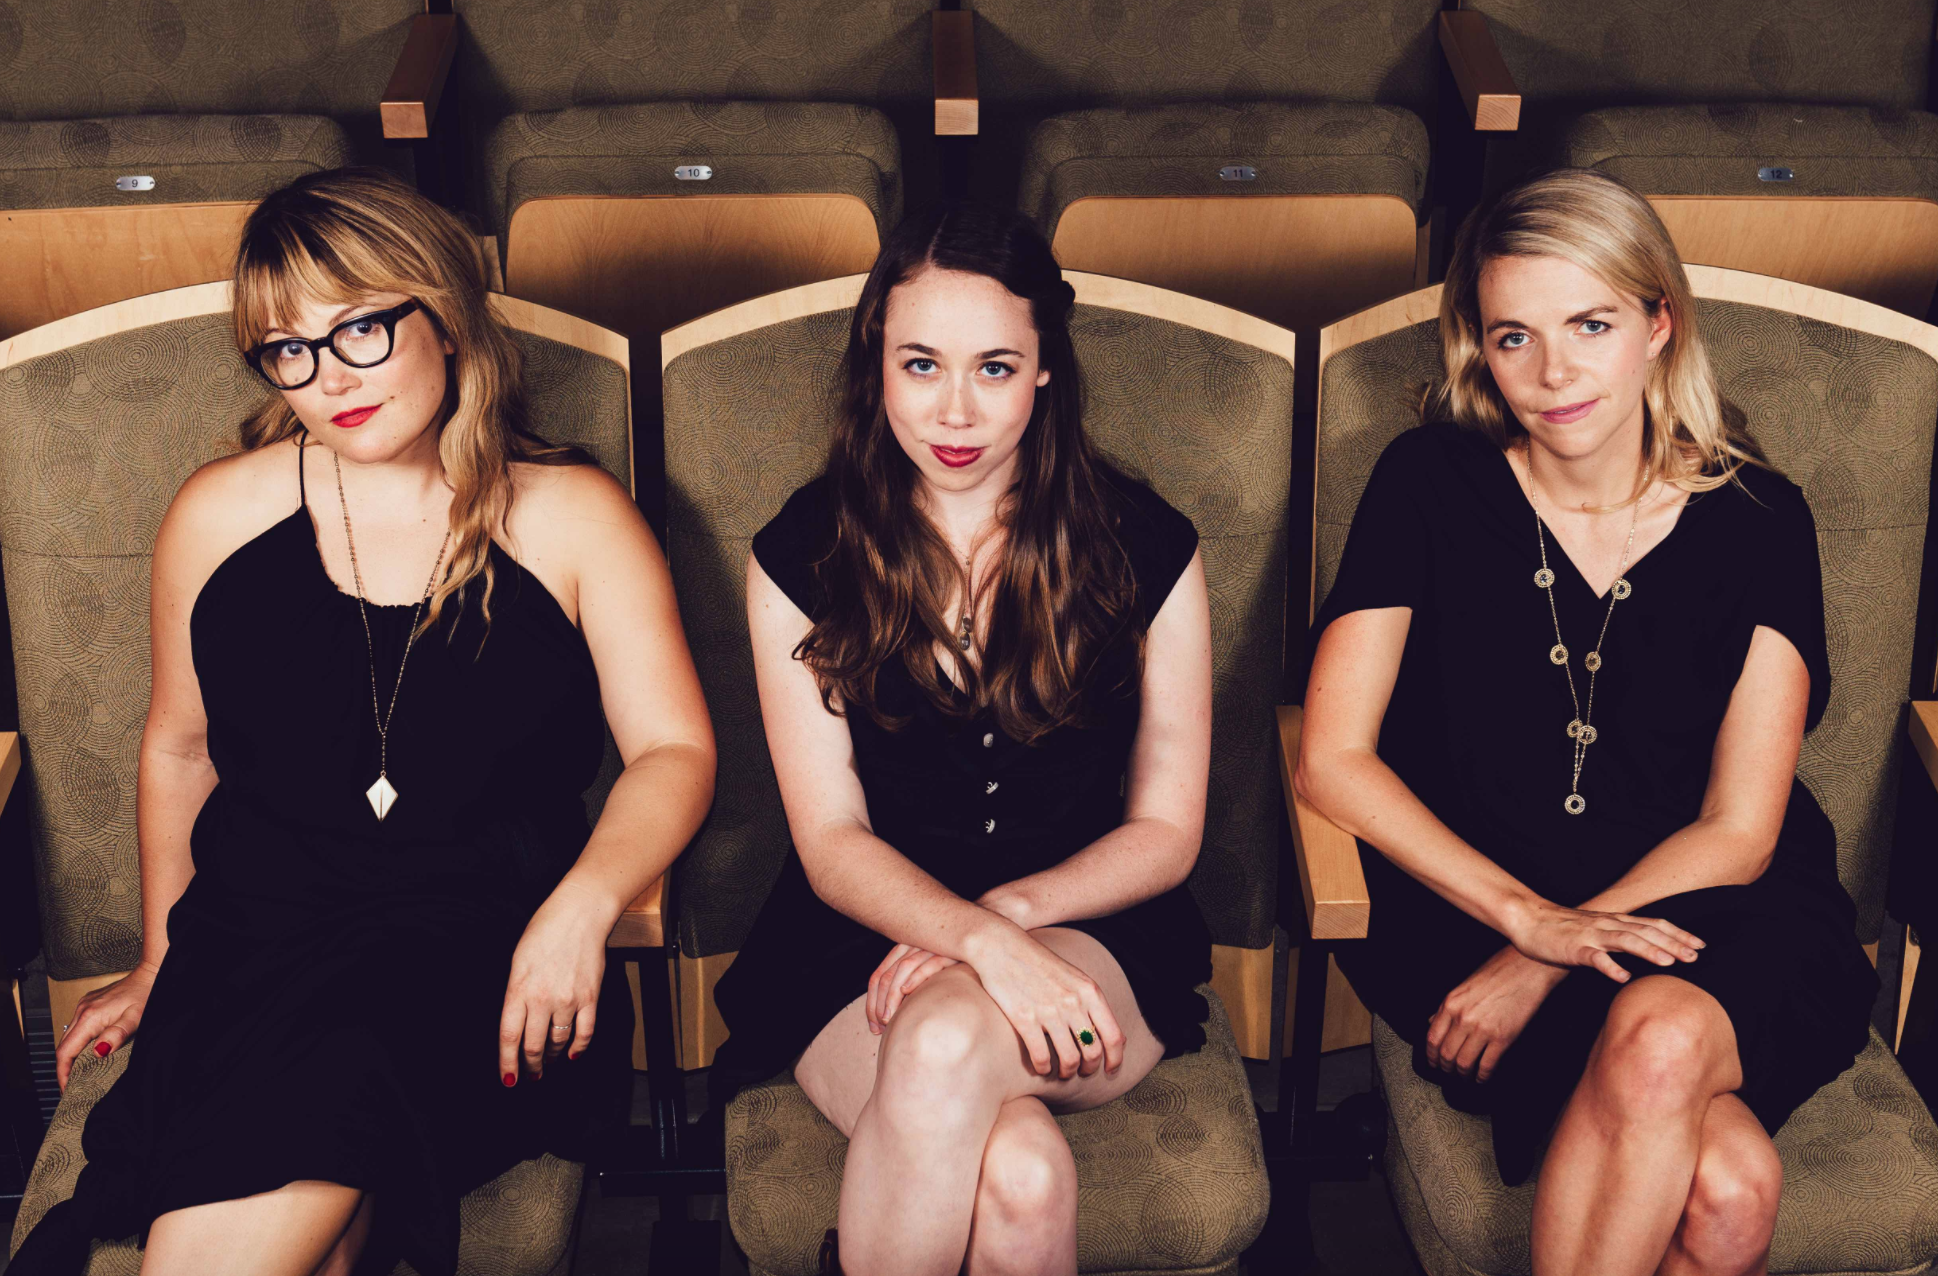 I'm With Her – Sara Watkins, Sarah Jarosz and Aoife O'Donovan presented by Old Town School of Folk Music and Thalia Hall